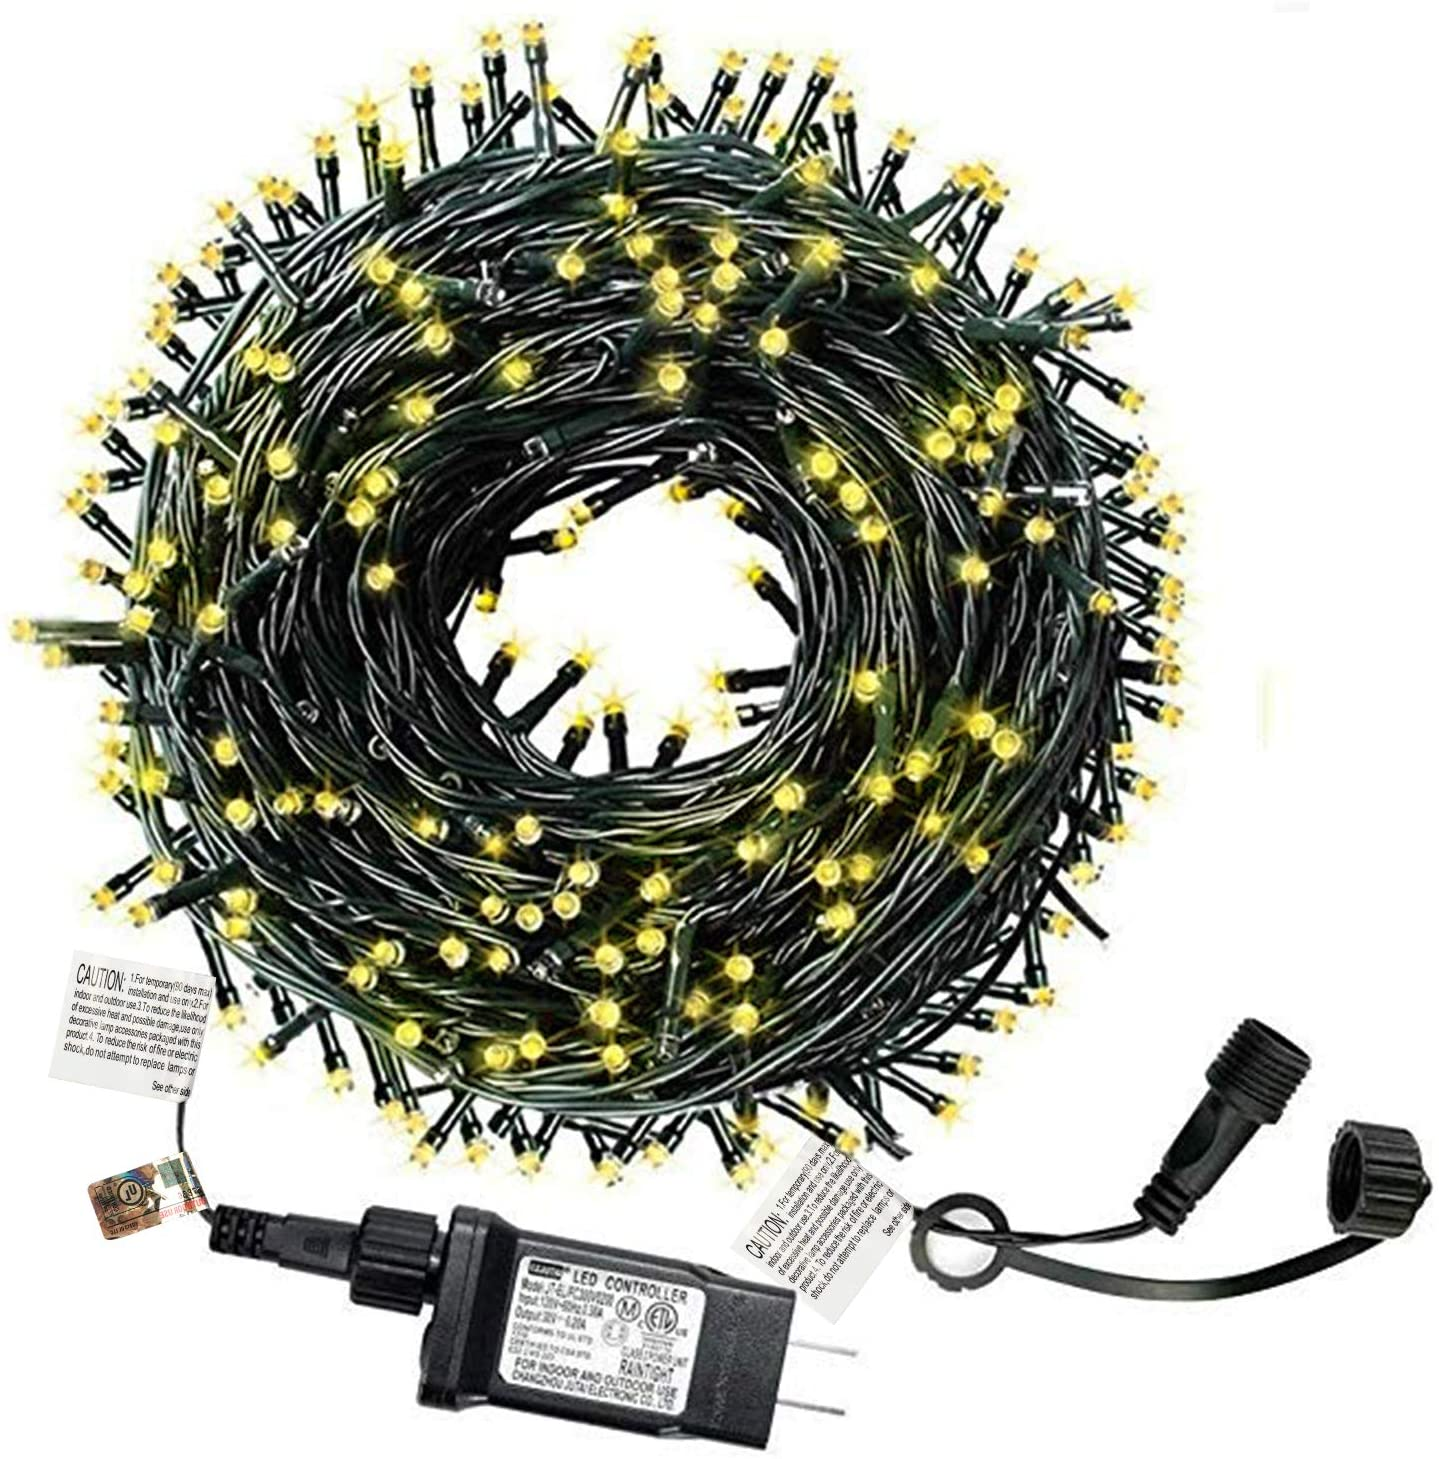 Christmas Tree Lights 108FT 300LED Outdoor Christmas Lights Waterproof IP65 UL Certificated End-to-End Connectable Patio Outdoor Christmas Lights Indoor Christmas Tree Lights (Warm White)